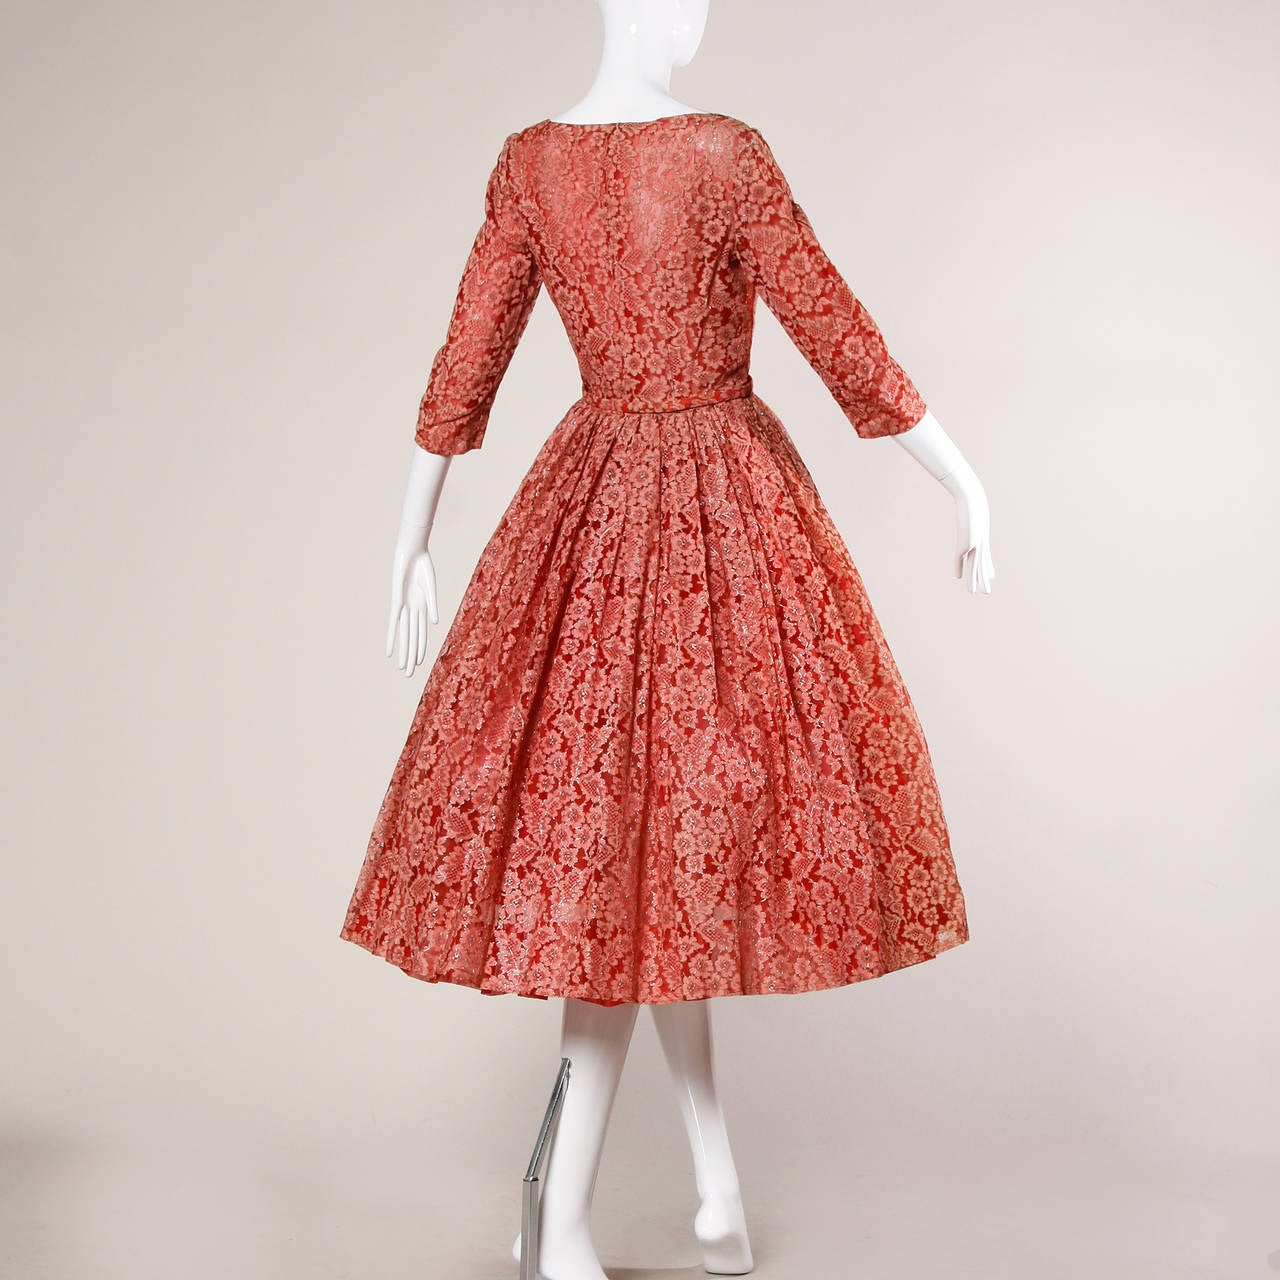 1950s Vintage Red Lace Cocktail Dress with Belt 2